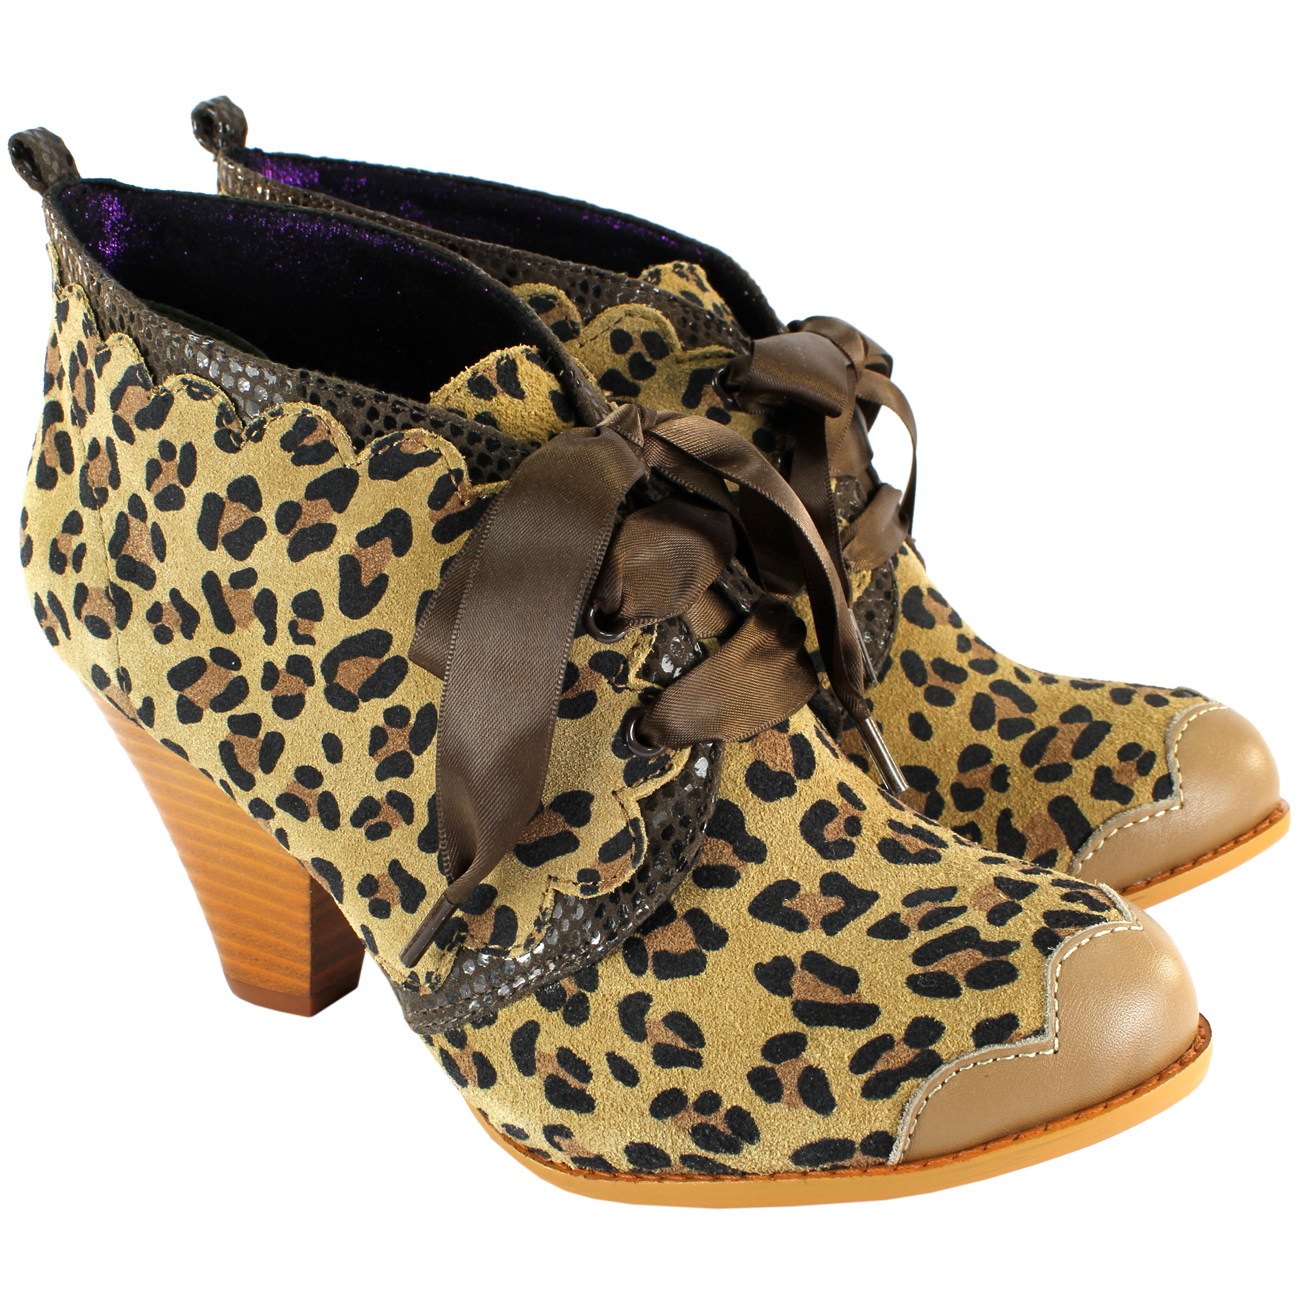 Poetic Licence Birdie Booty Mid Heel Ankle Boots